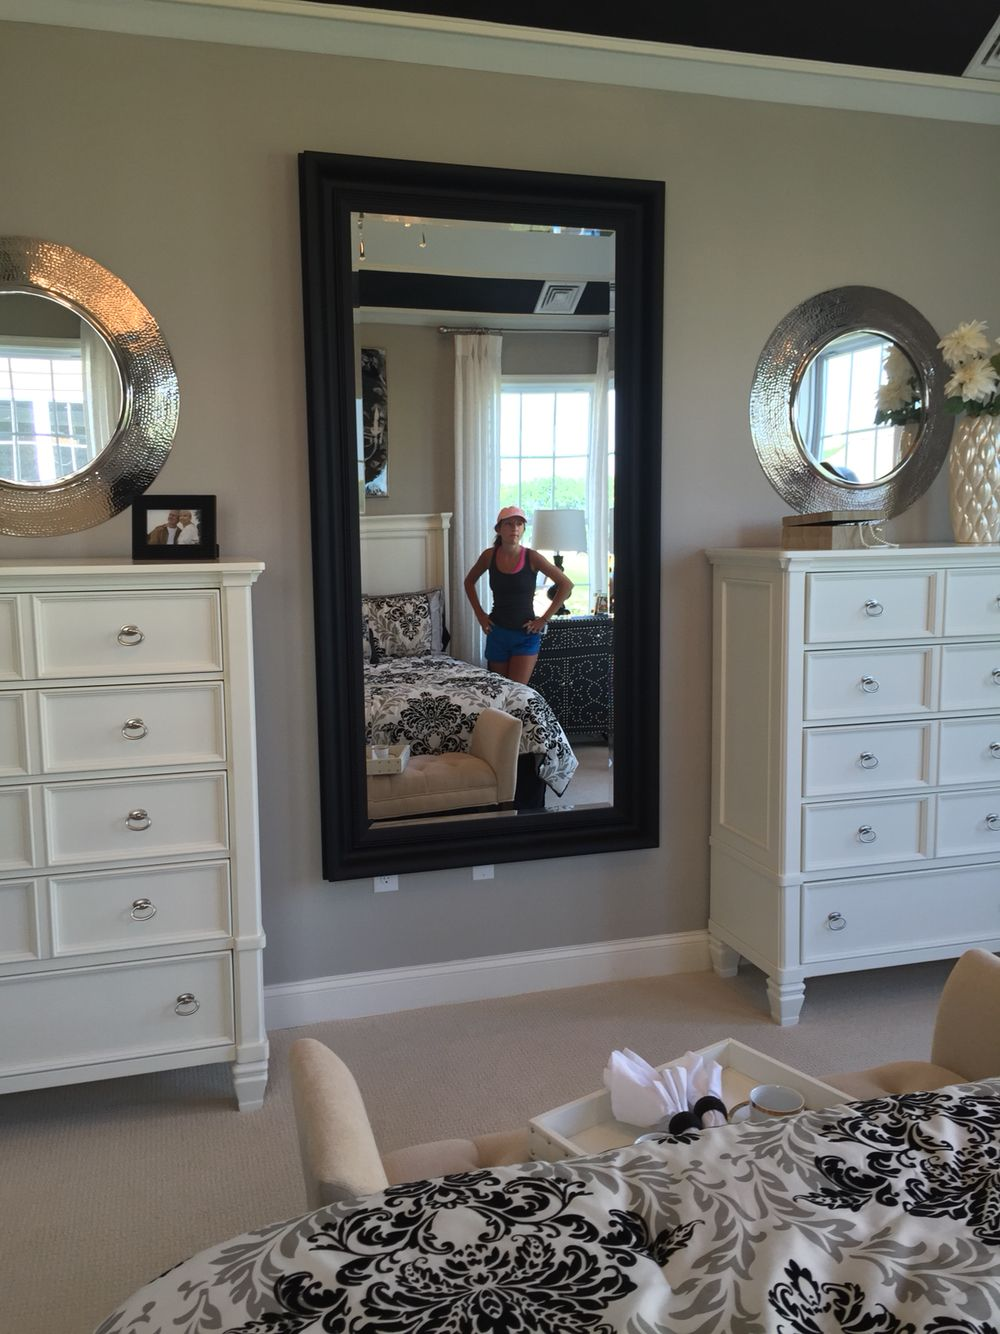 Best 25 Dresser Ideas Ideas On Pinterest Upcycled This Month Original 1024 x 768